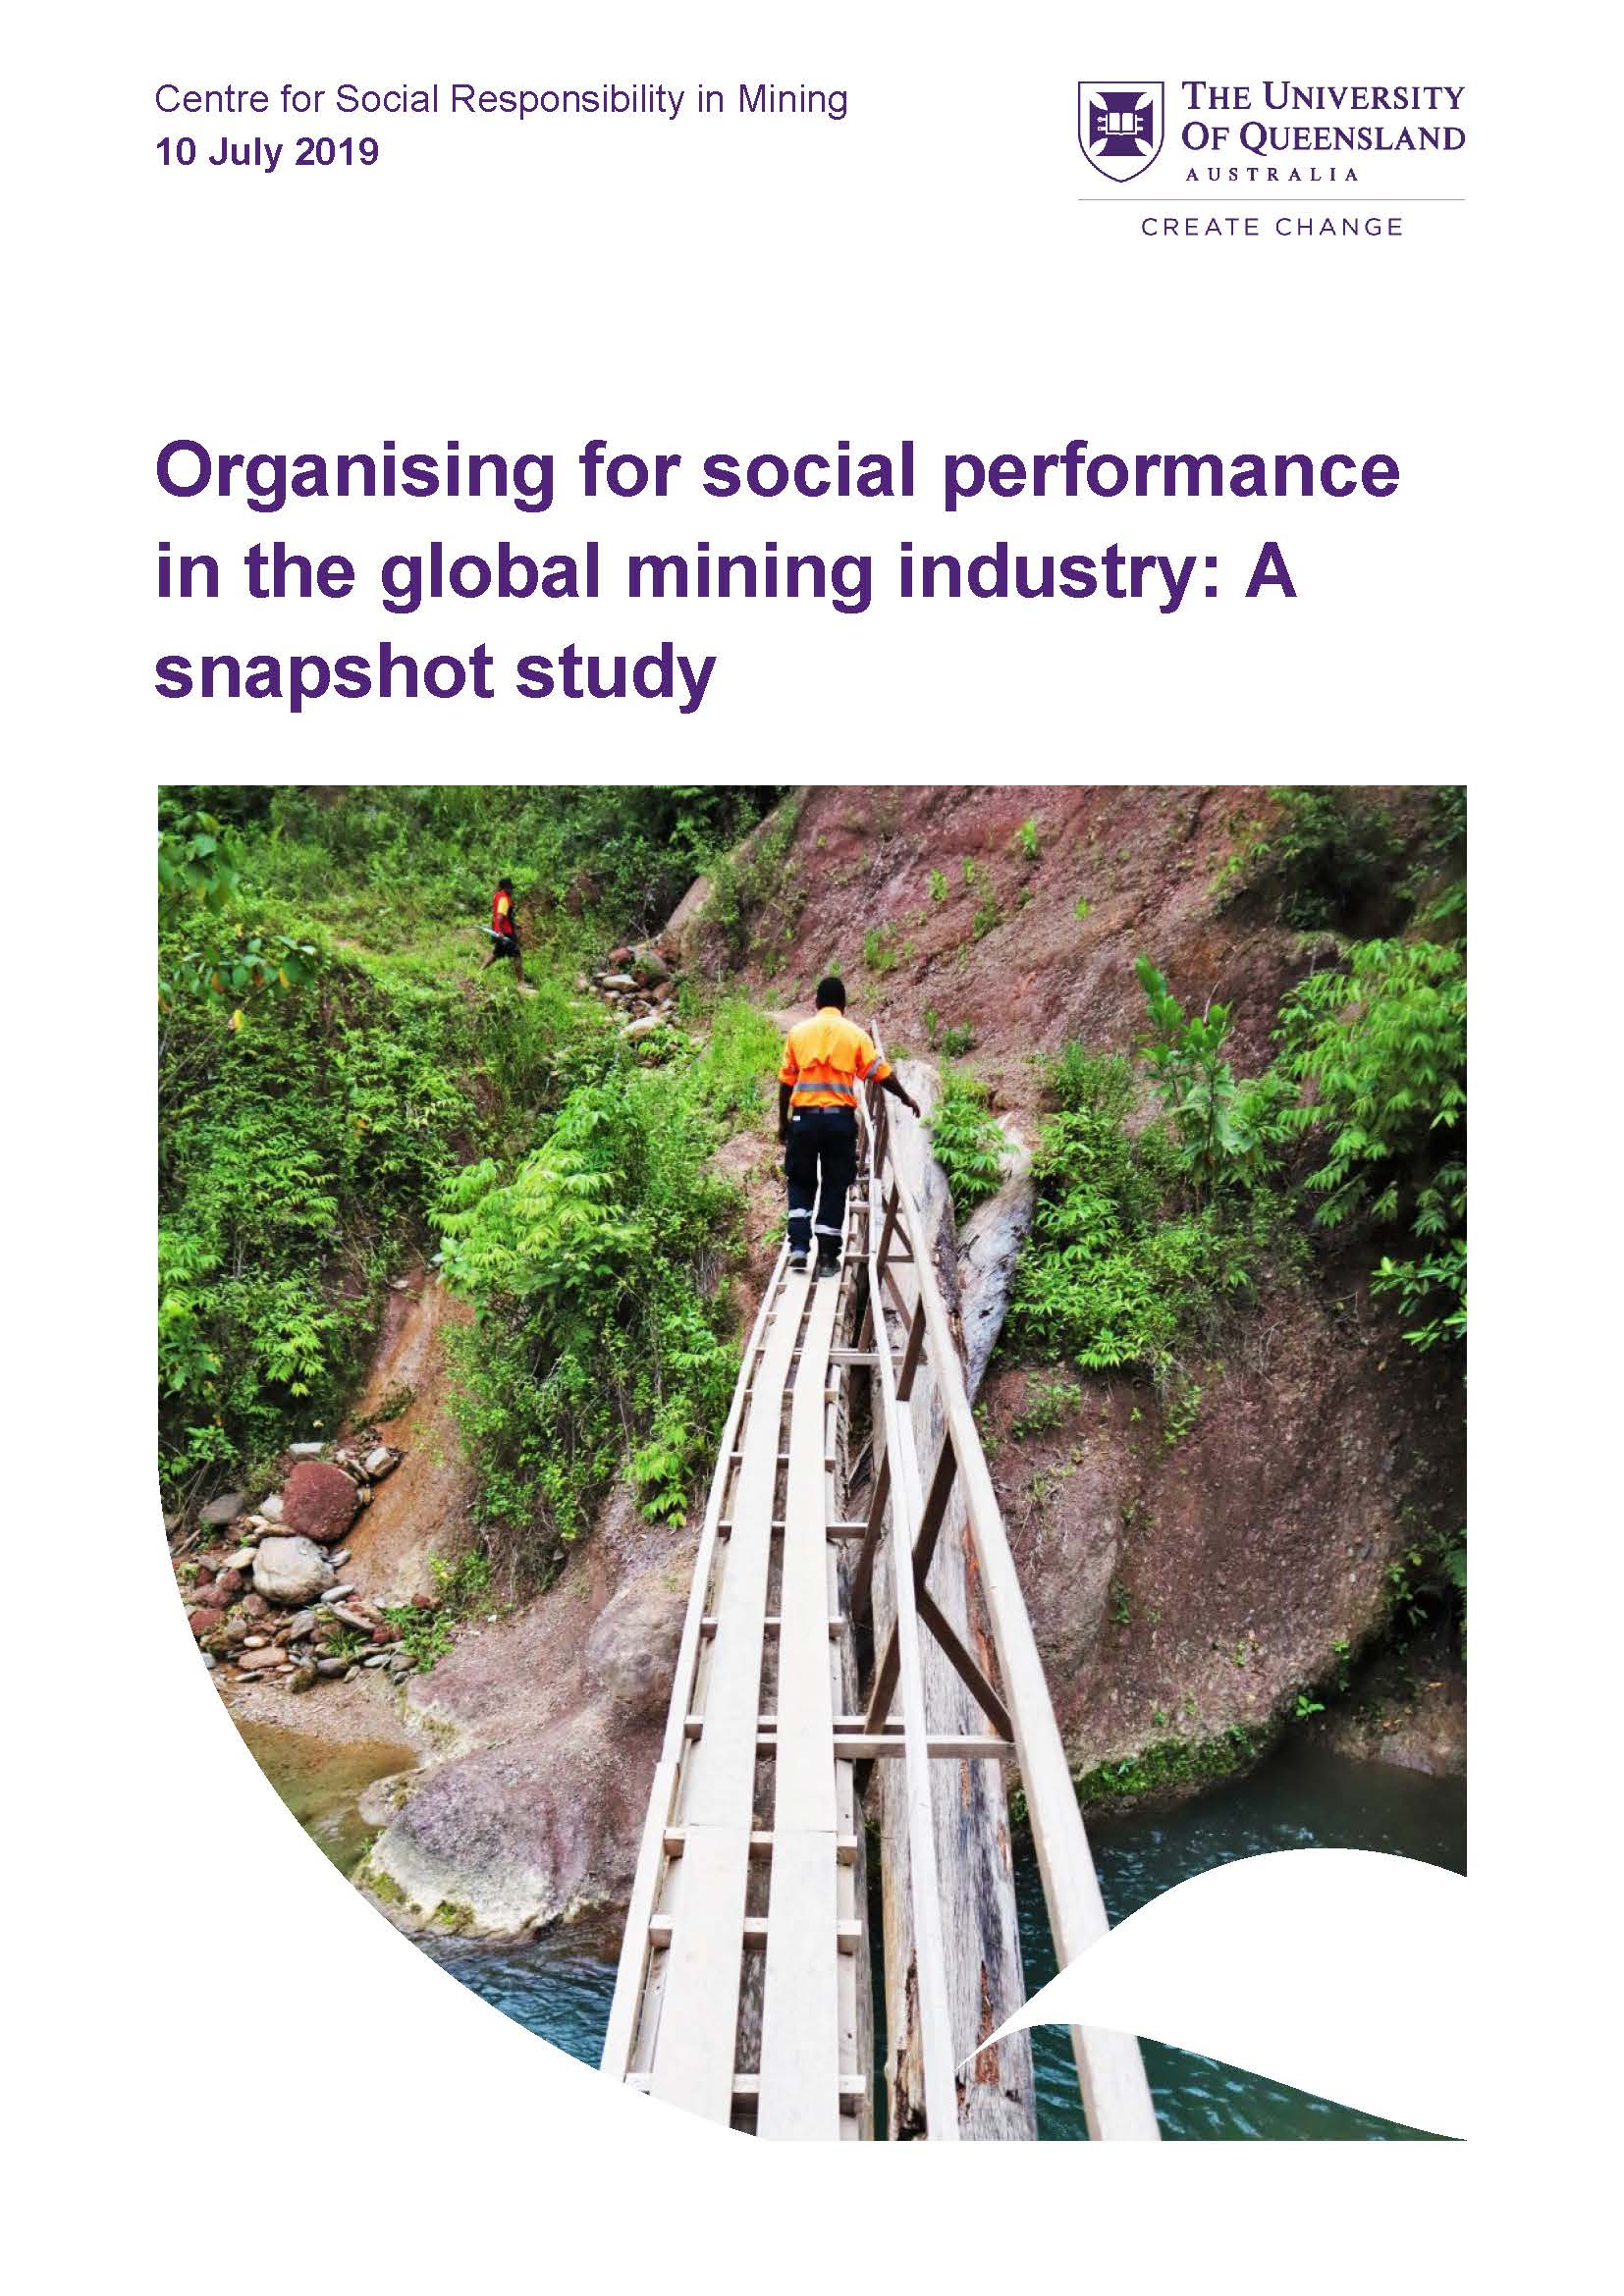 Organising for social performance in the global mining industry: A snapshot study